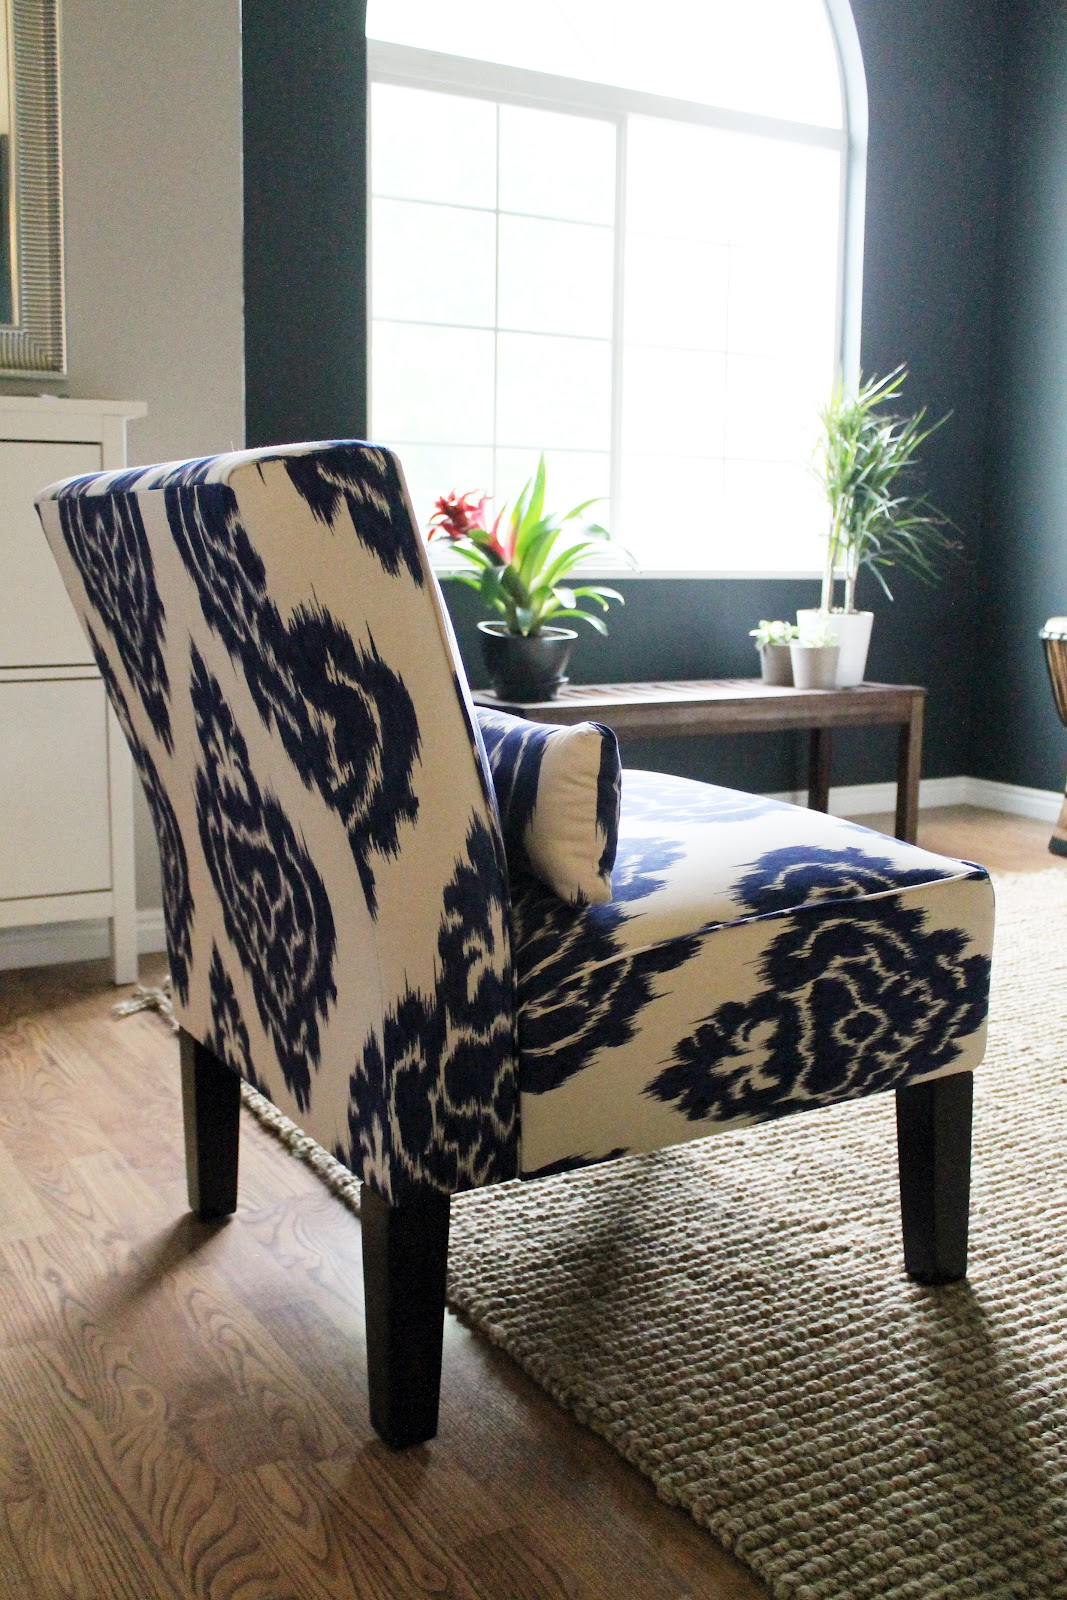 I Have Always Loved This Ikat Slipper Chair And Thought The Cream Navy Would Go So Well With Our New Darker Digs Snagged It When Was For On